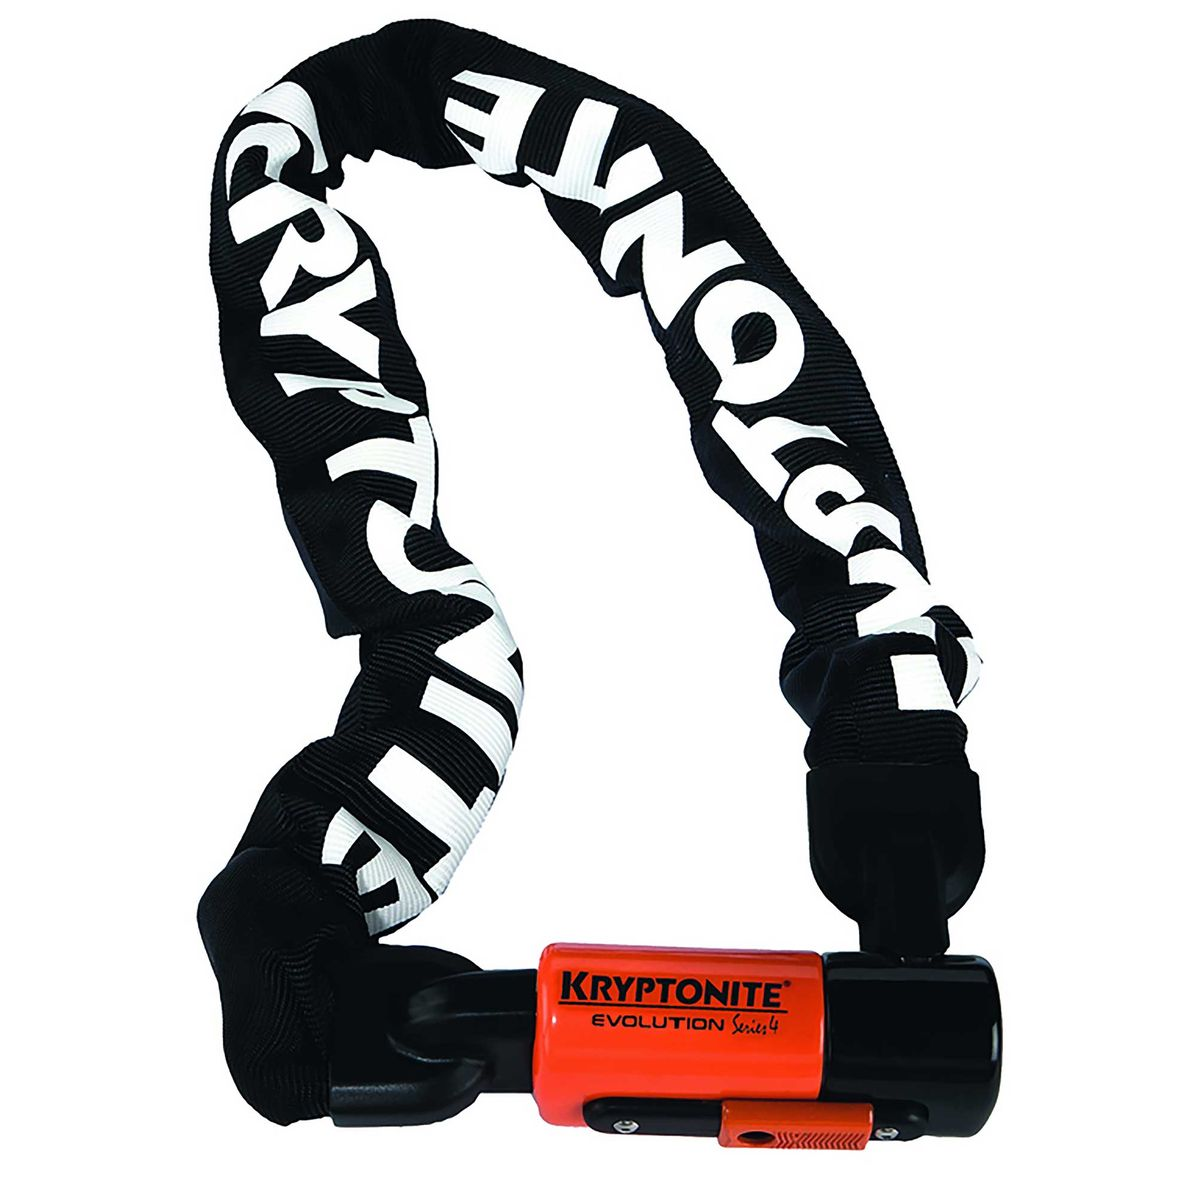 Evolution Series 4 Integrated Chain Lock